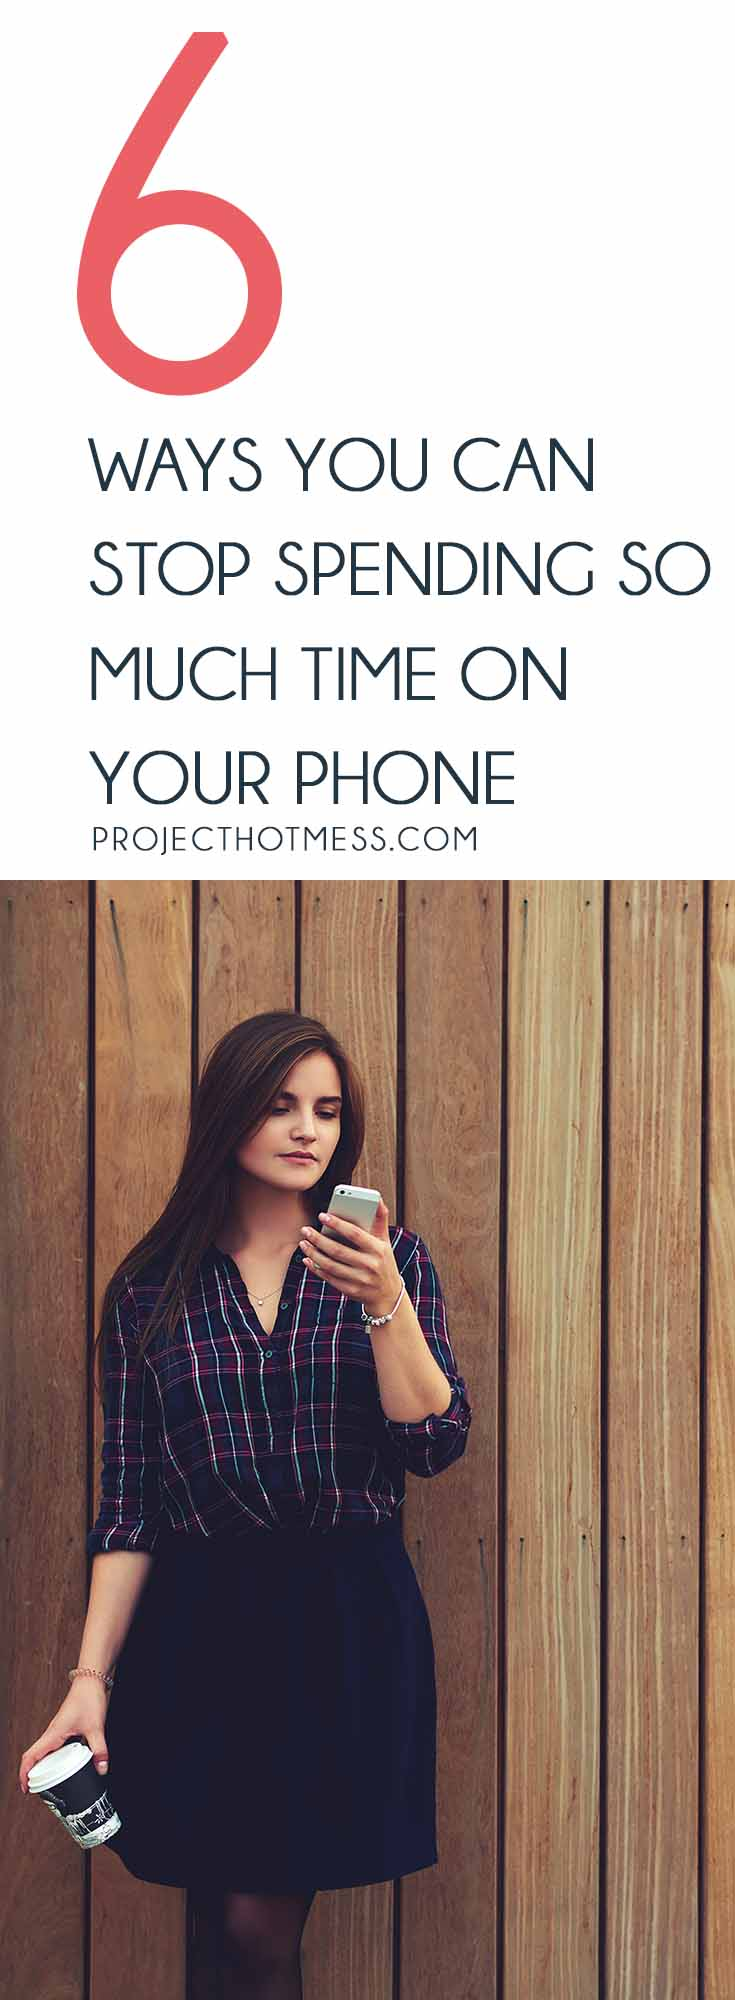 How much time do you spend on your phone each day? Most people I talk to know they are addicted to their phones but they don't know how to 'break up' with them. Check out these simple ways you can stop spending so much time on your phone and see if you break the habit.